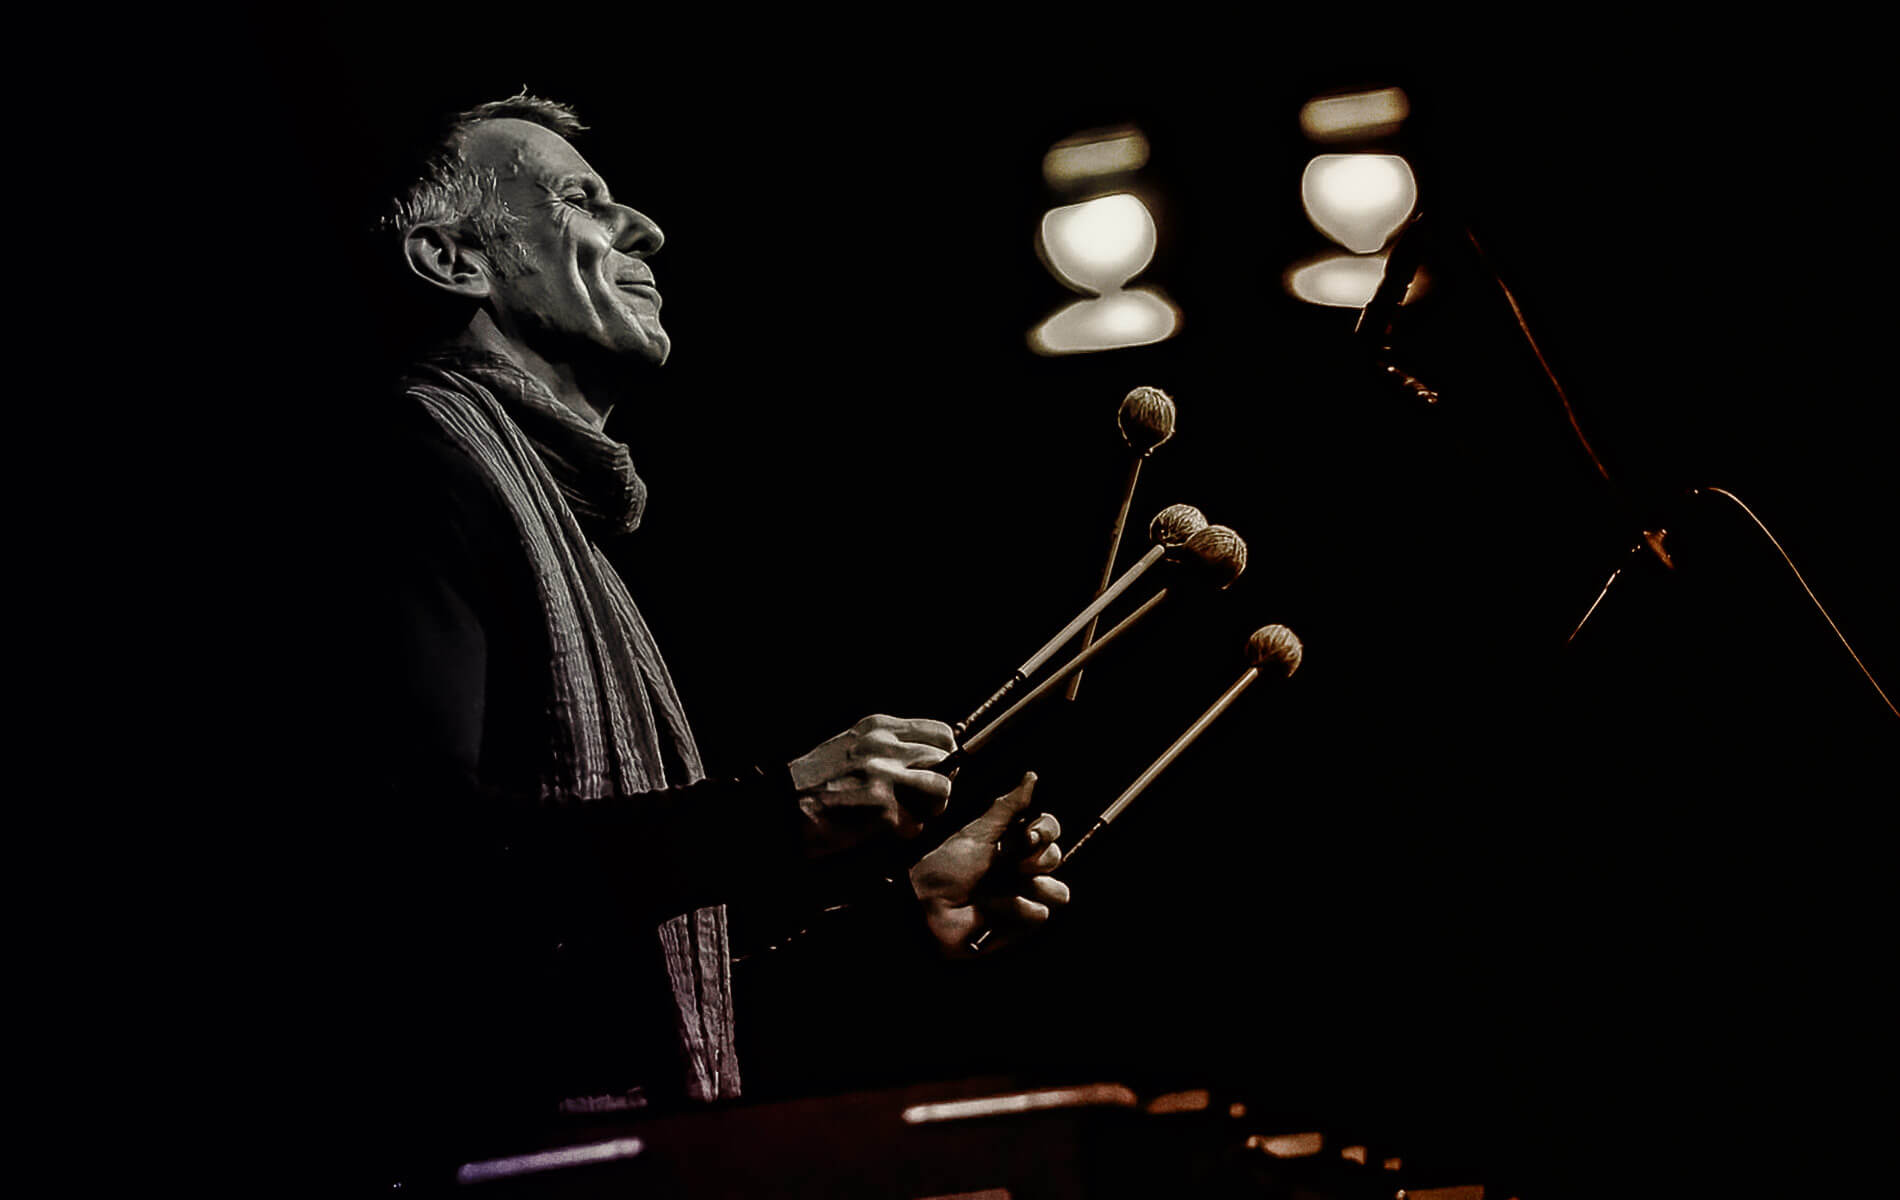 Joe Locke (photo by Claudio Romani)